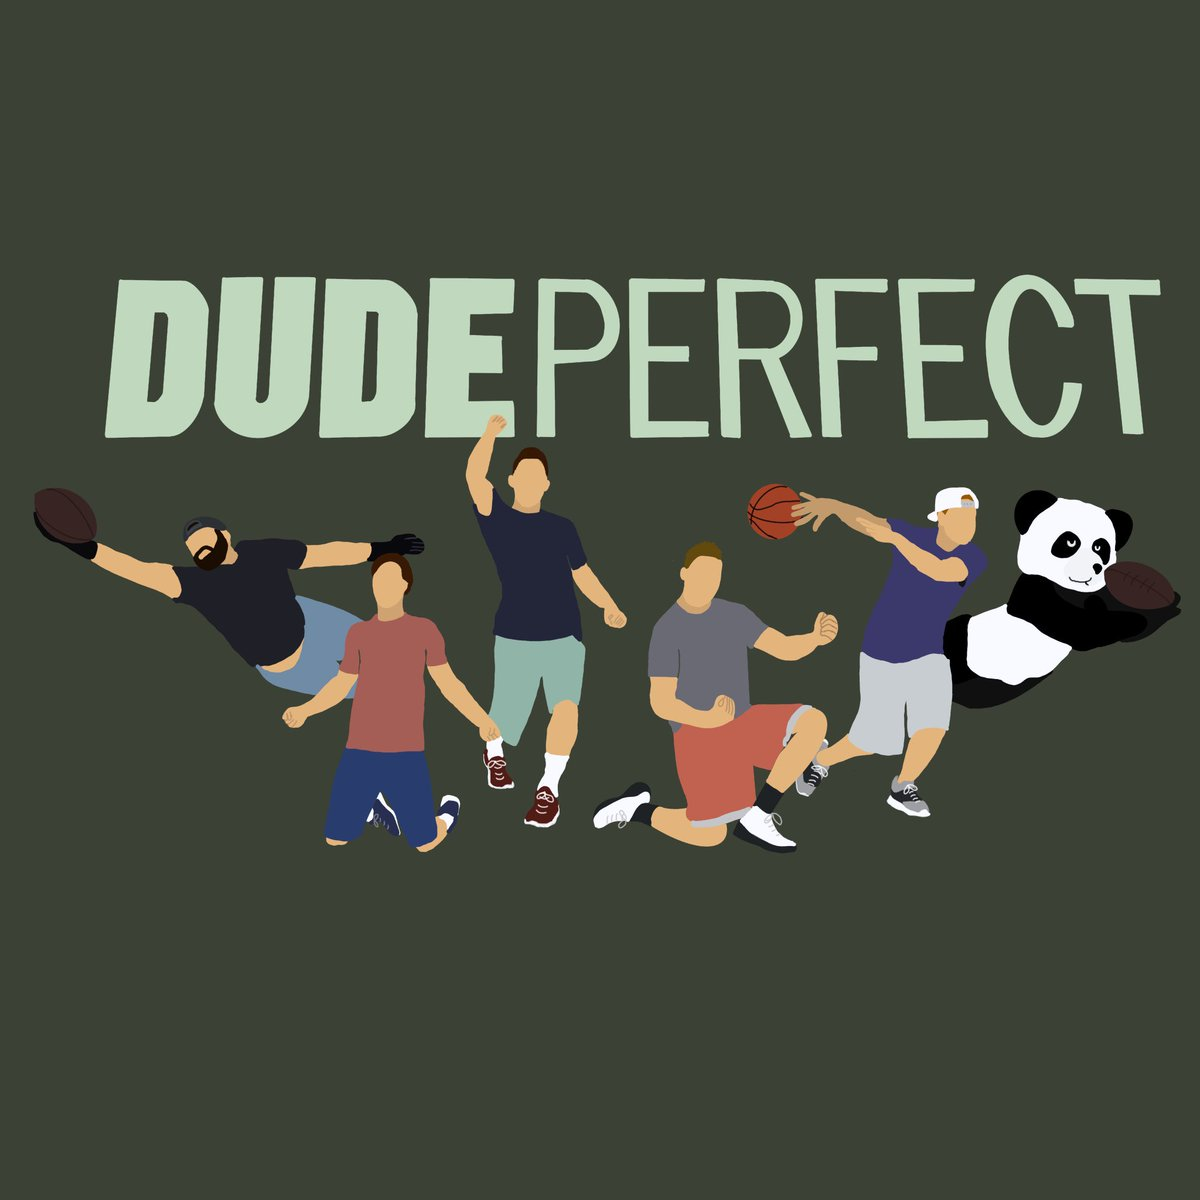 My daughter has been hard at work with the iPad she got for Christmas. Watcha think @DudePerfect?